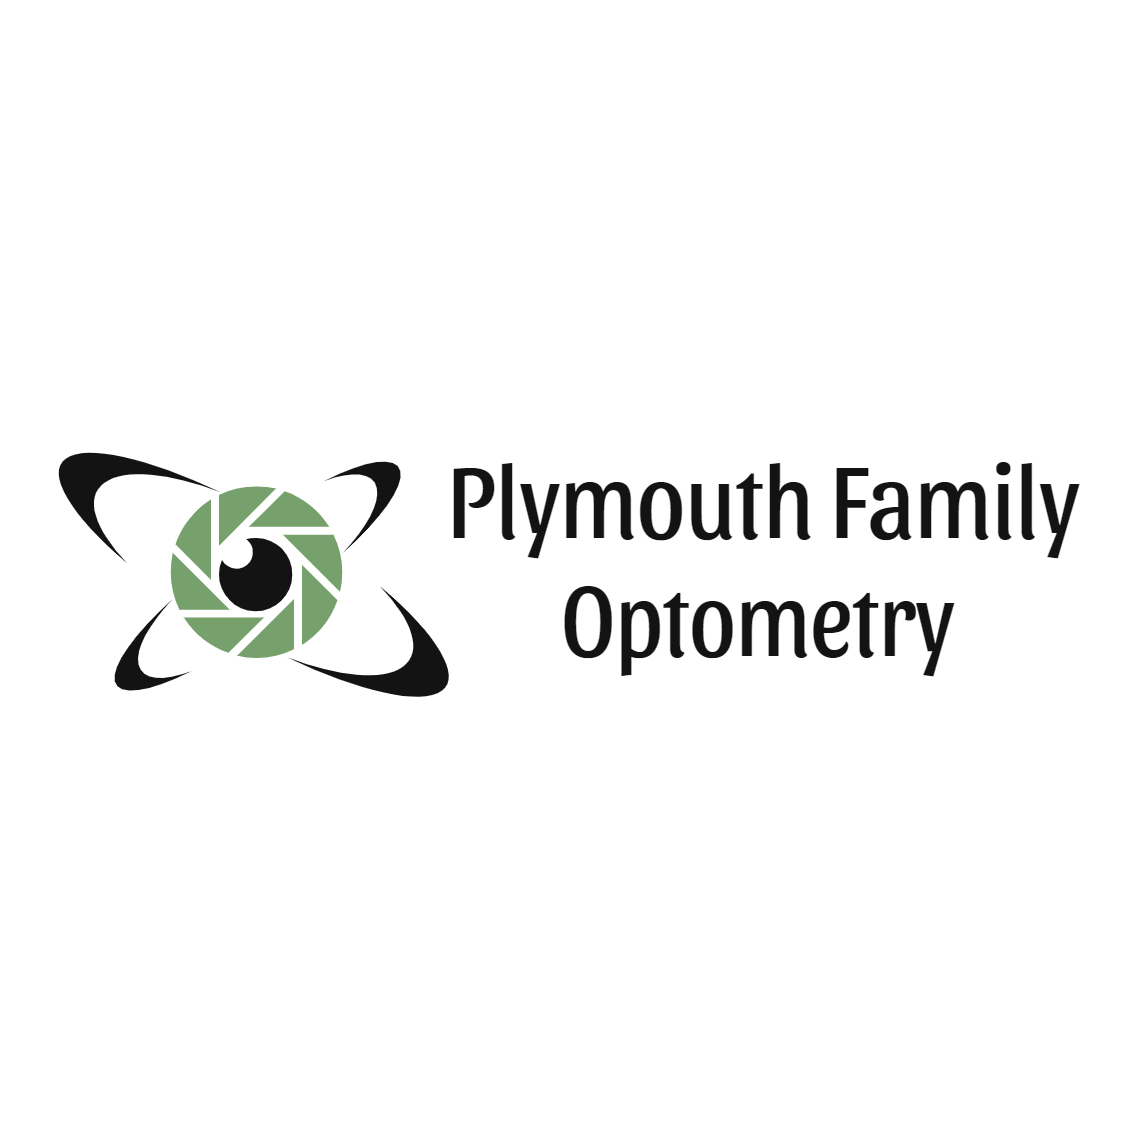 Plymouth Family Optometry - Plymouth, MA 02360 - (774)283-4005 | ShowMeLocal.com